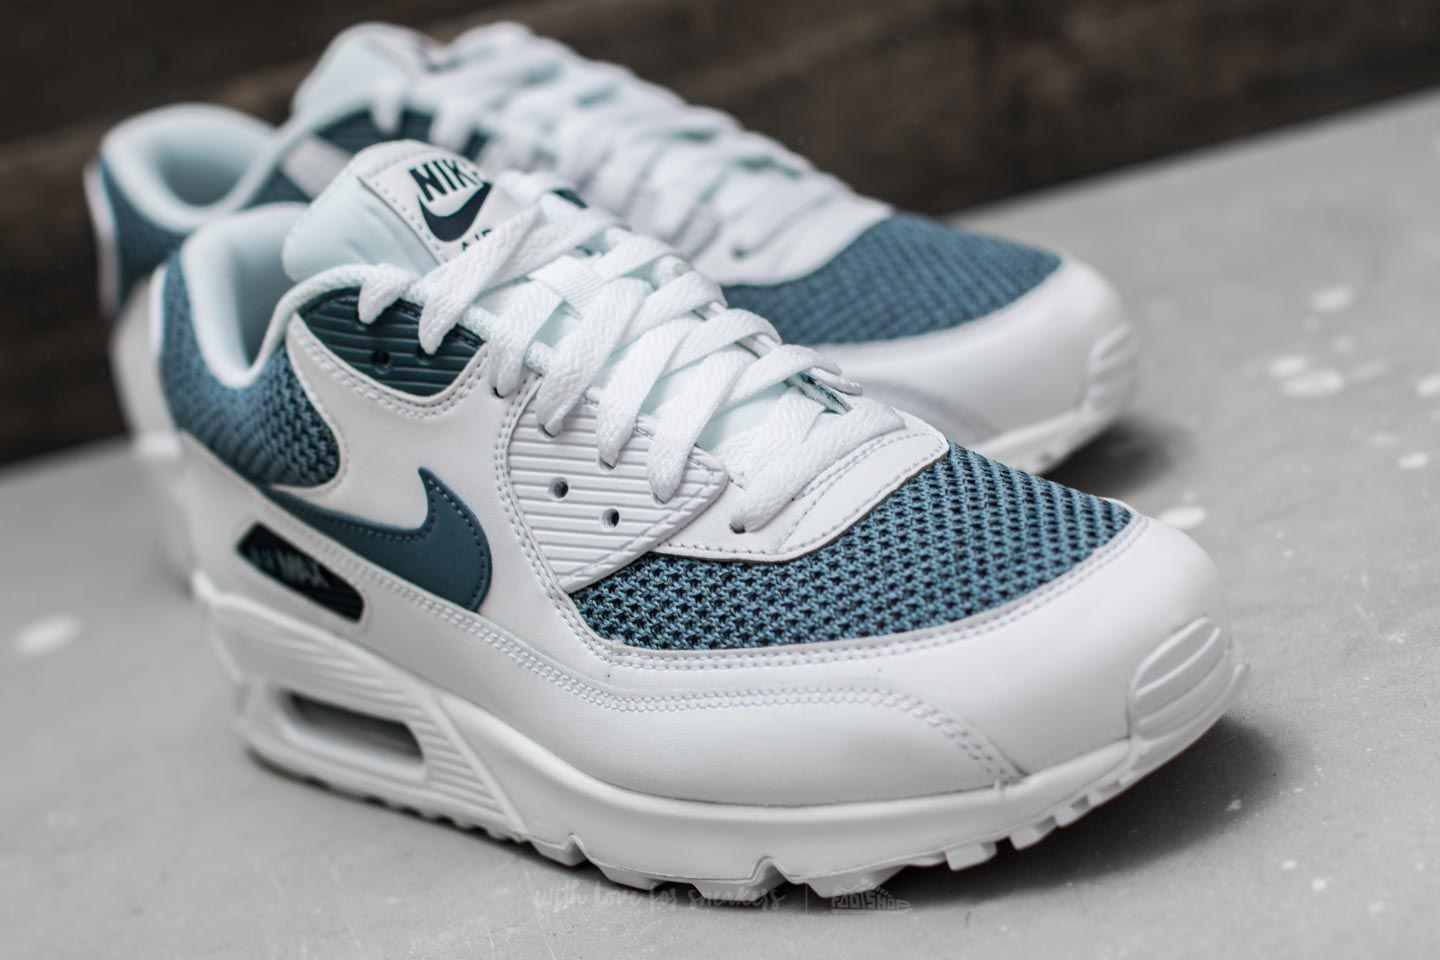 on sale fd81d b8140 ... 537384 133 Source · Lyst Nike Air Max 90 Essential White Armory Blue  armory Blue in